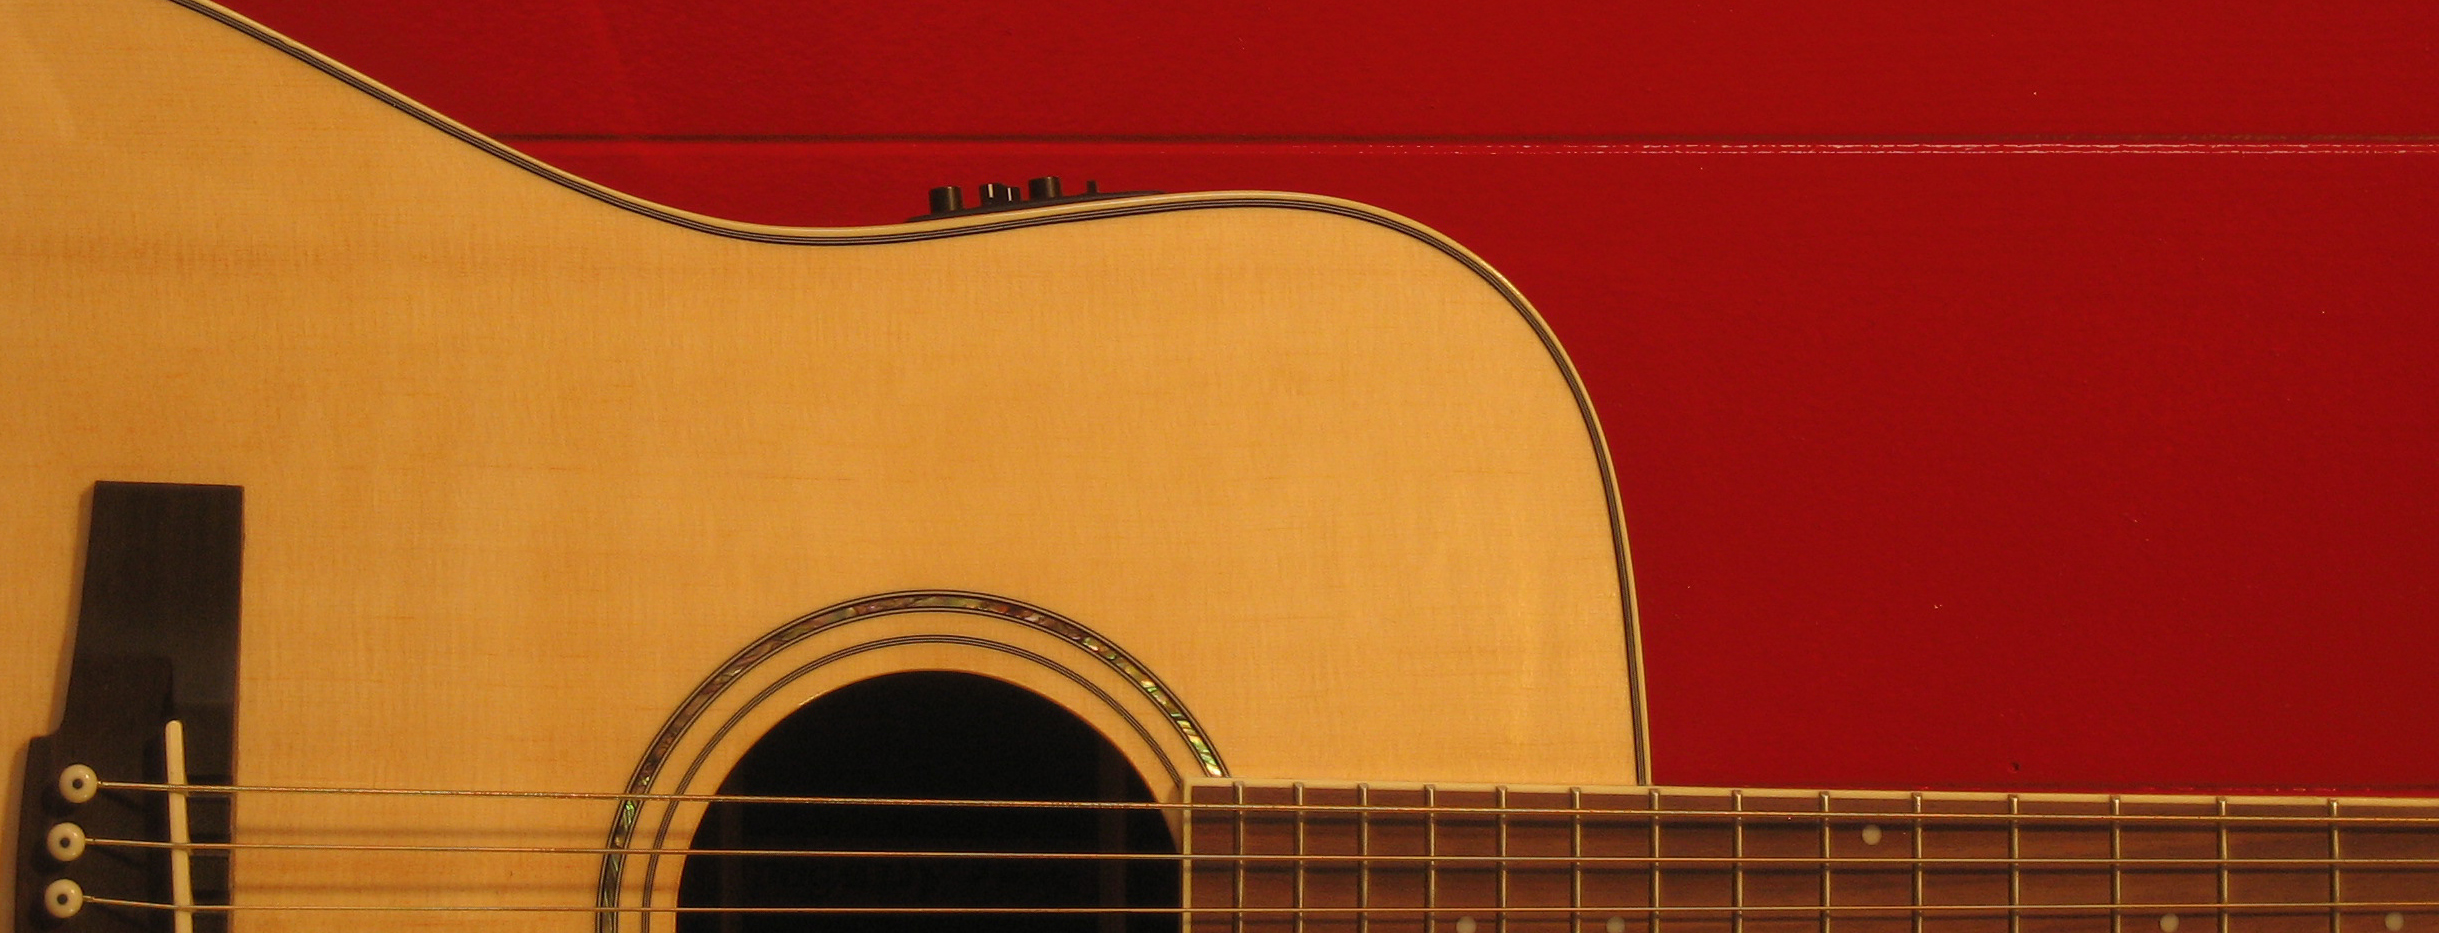 Online Songwriting Tools